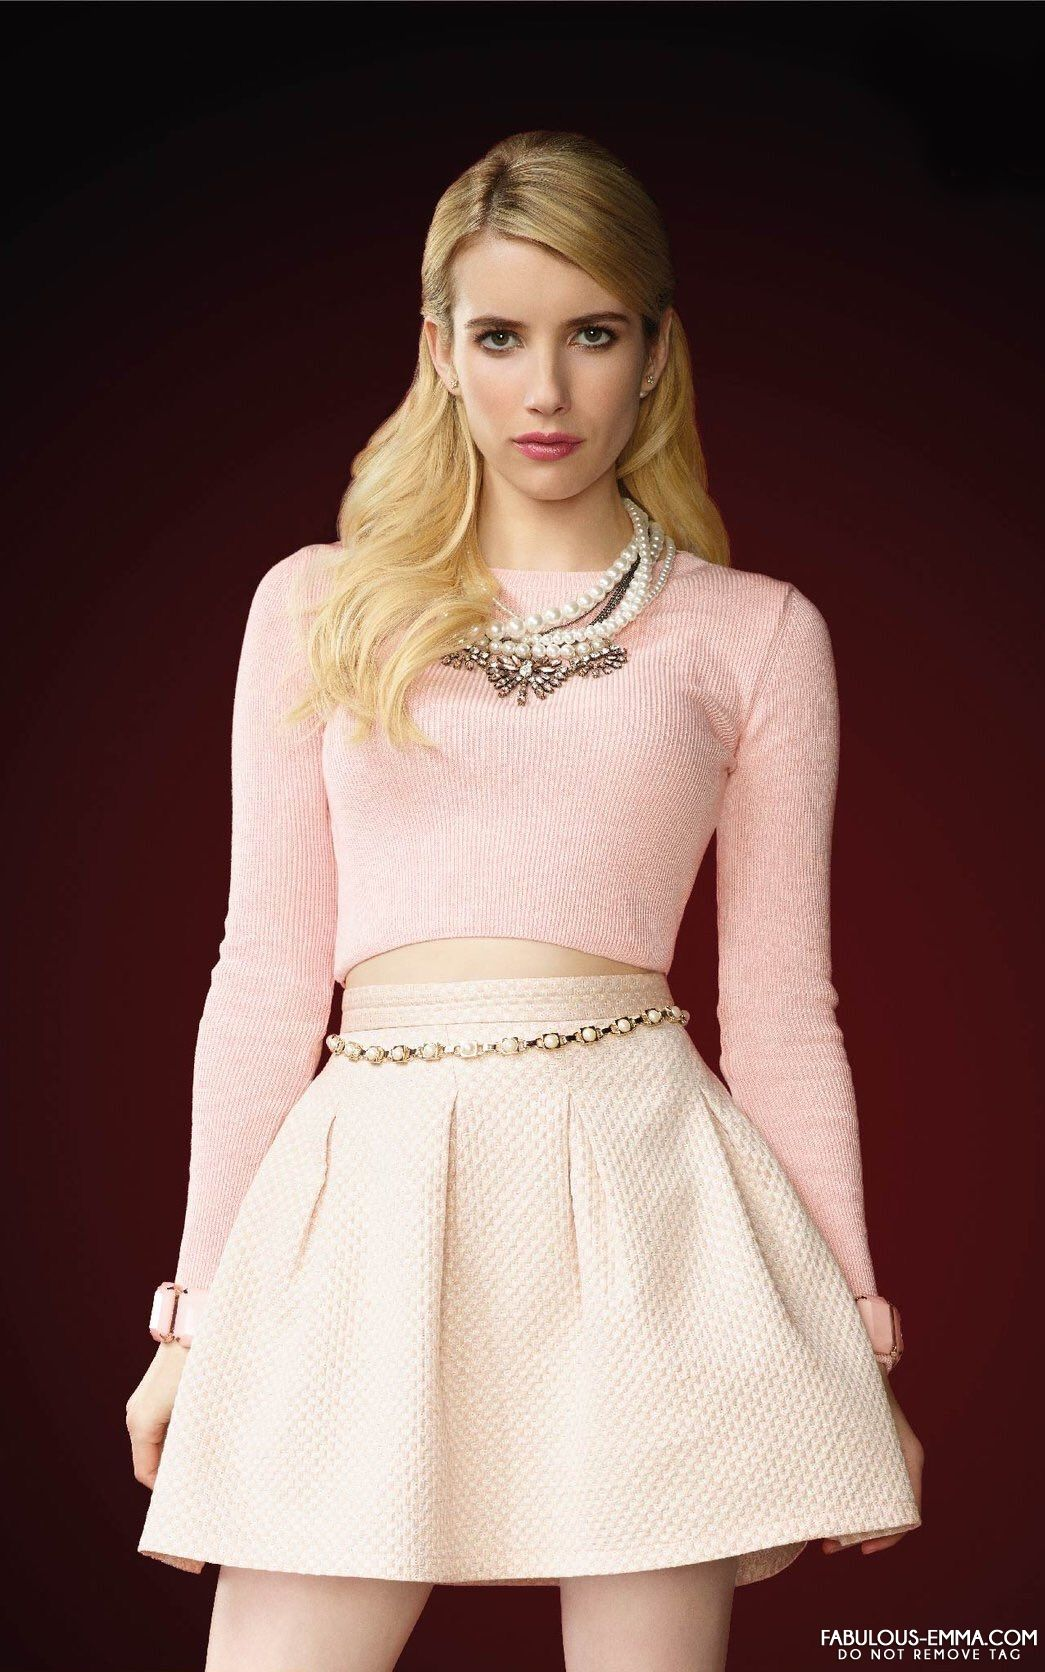 Emma Roberts As Chanel Oberlin Scream Queens Fashion Queen Fashion Queen Outfit